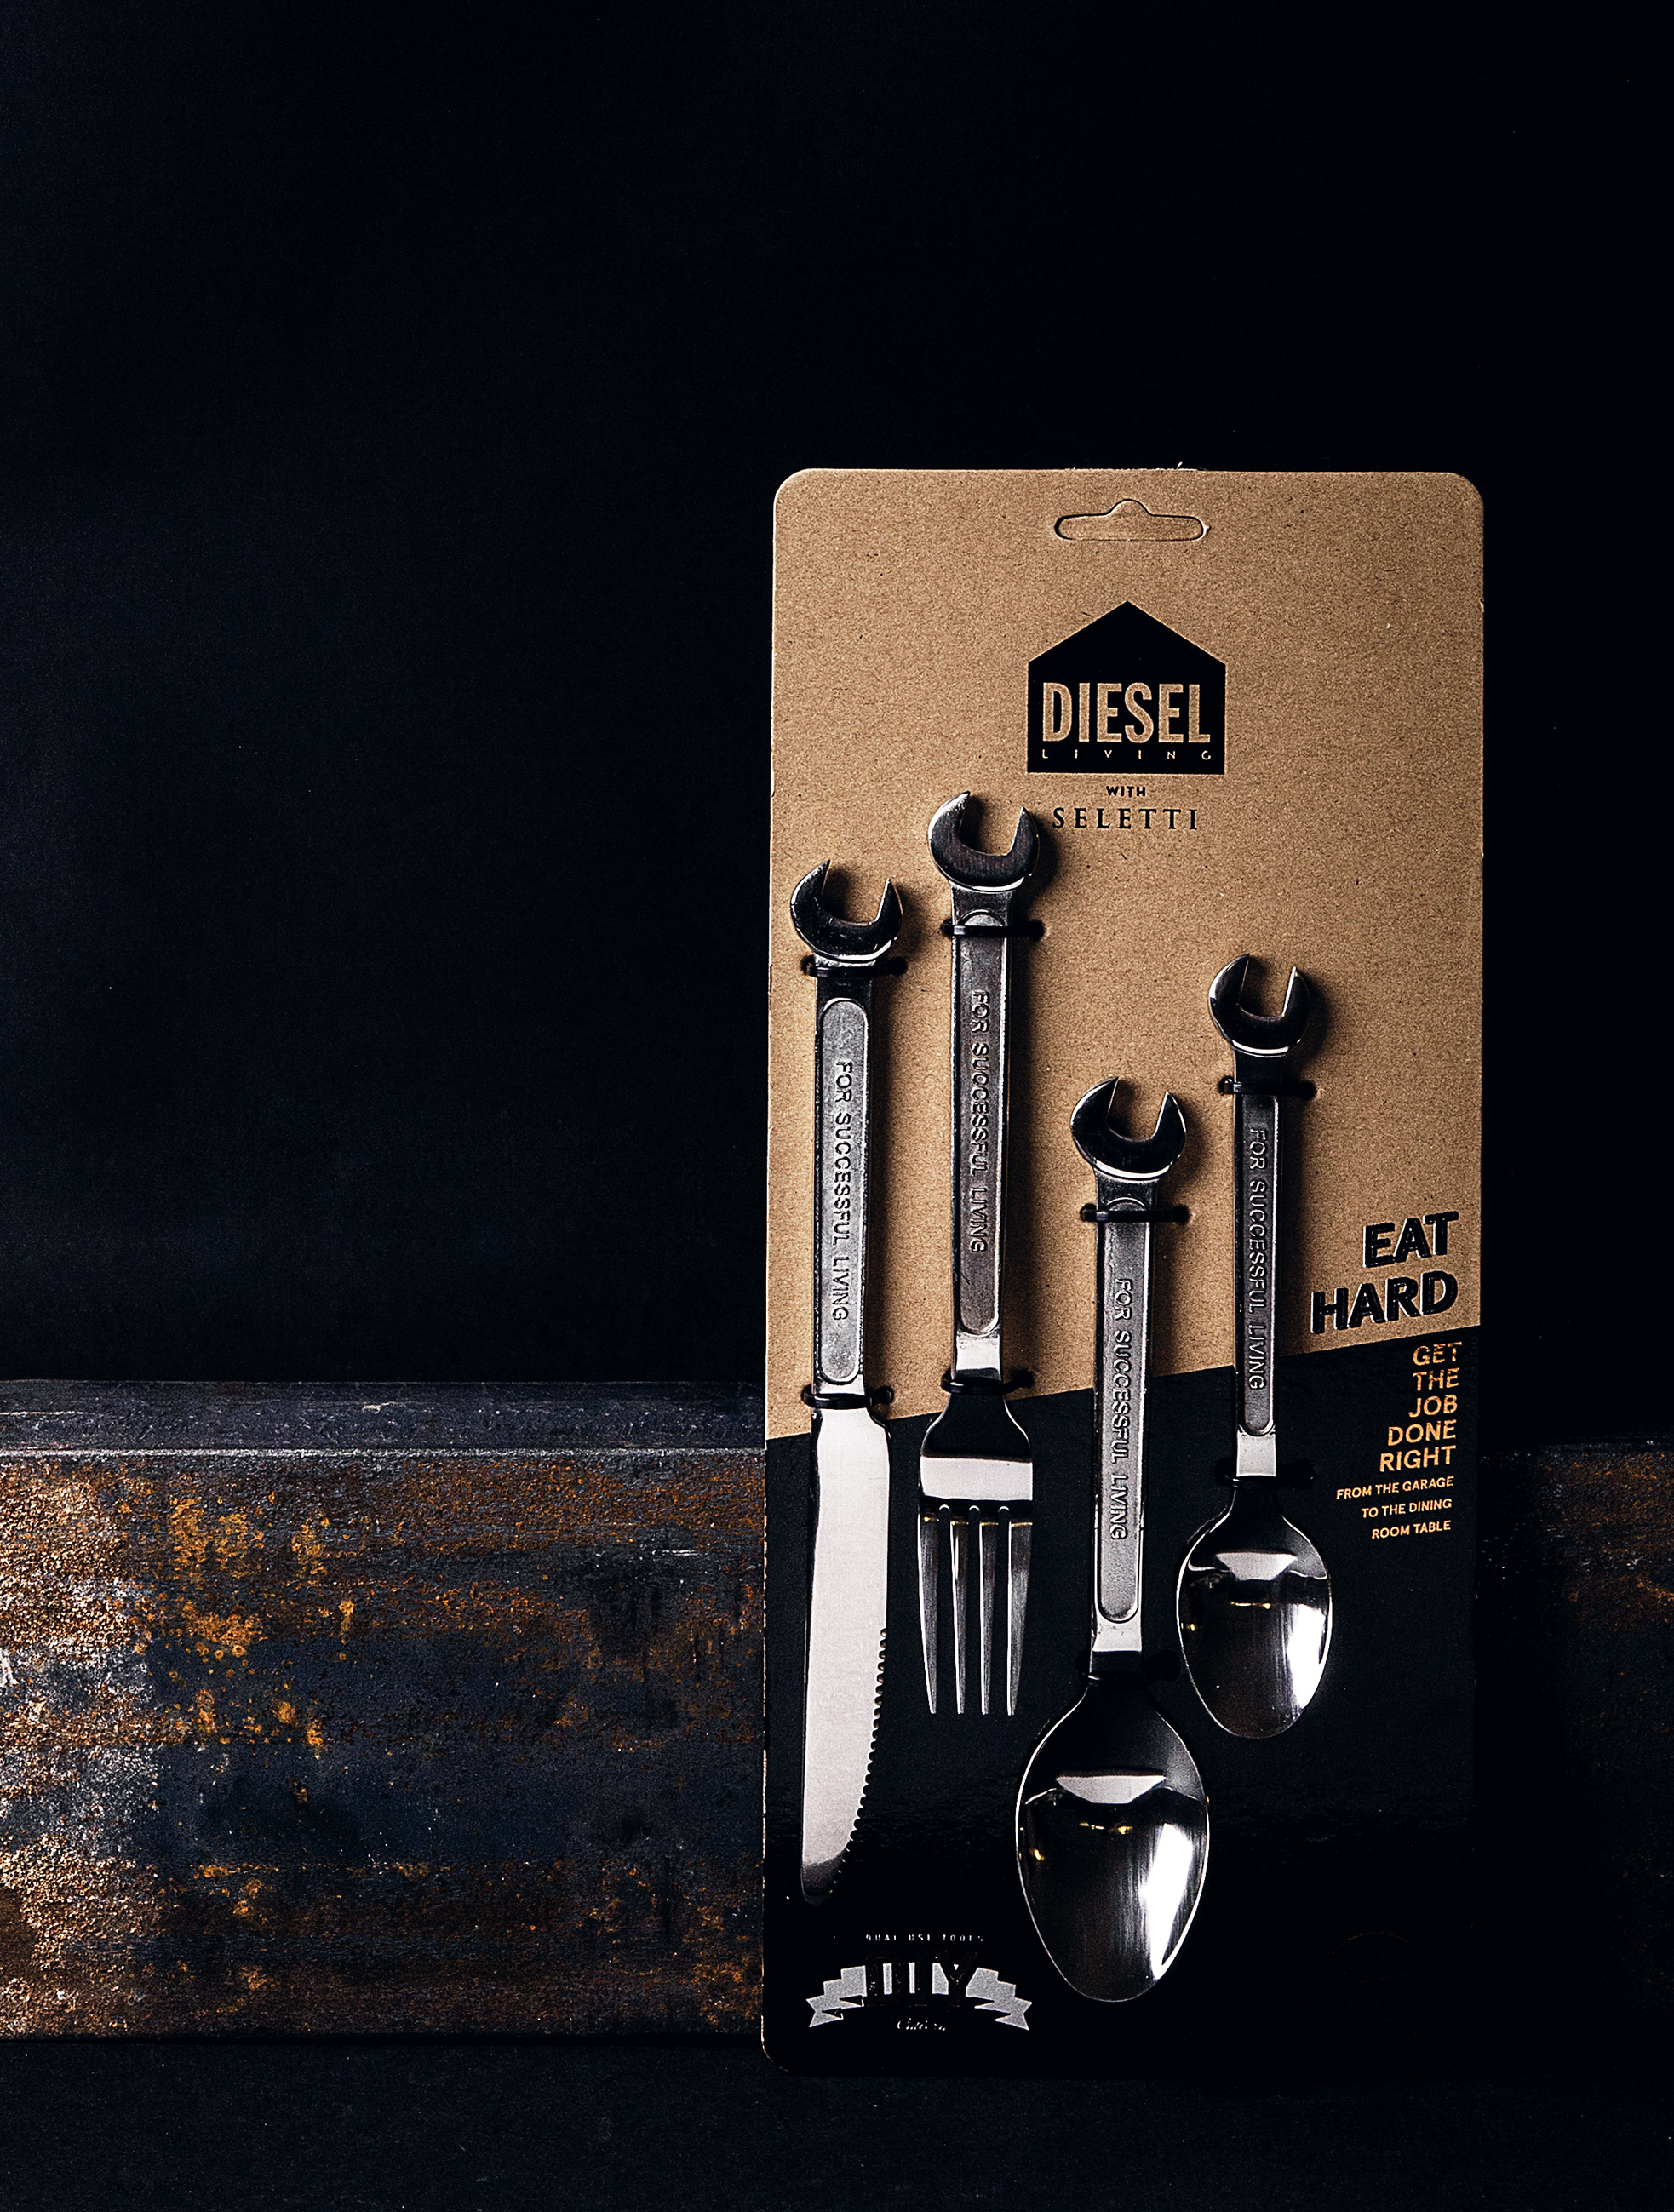 The extra functional machine collection cutlery set